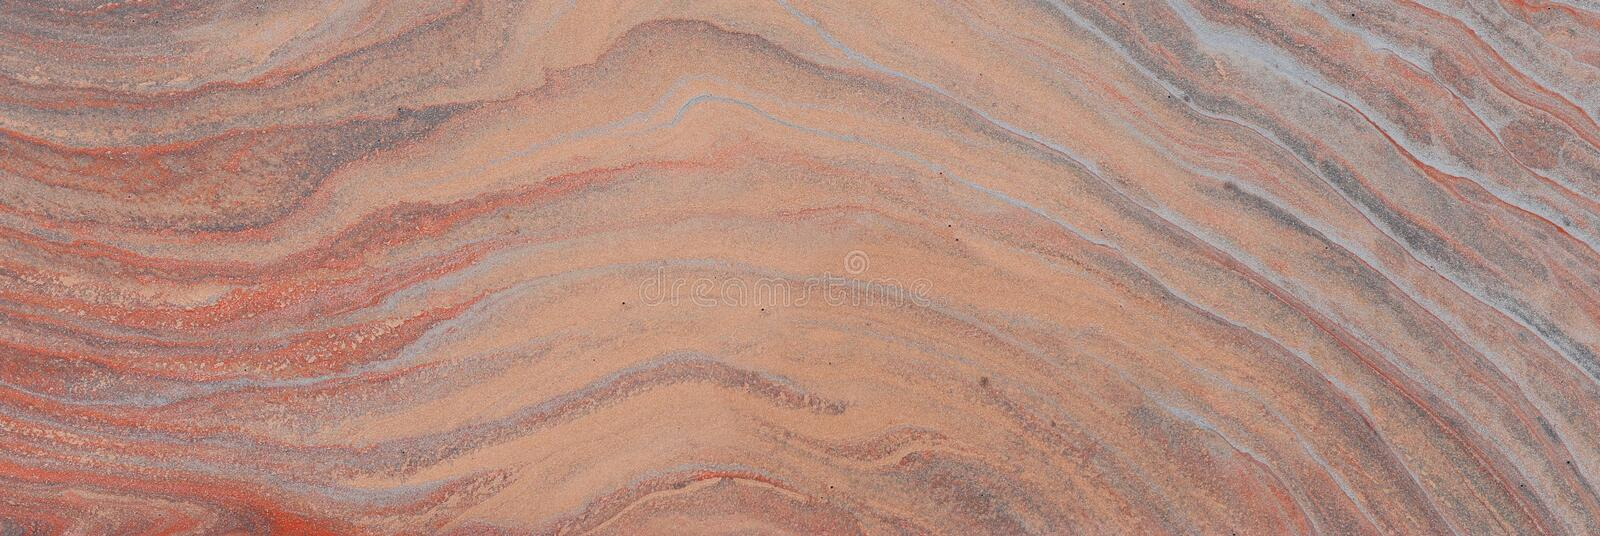 Photography of abstract marbleized effect background. brown, orange, gray and white creative colors. Beautiful paint royalty free stock photography